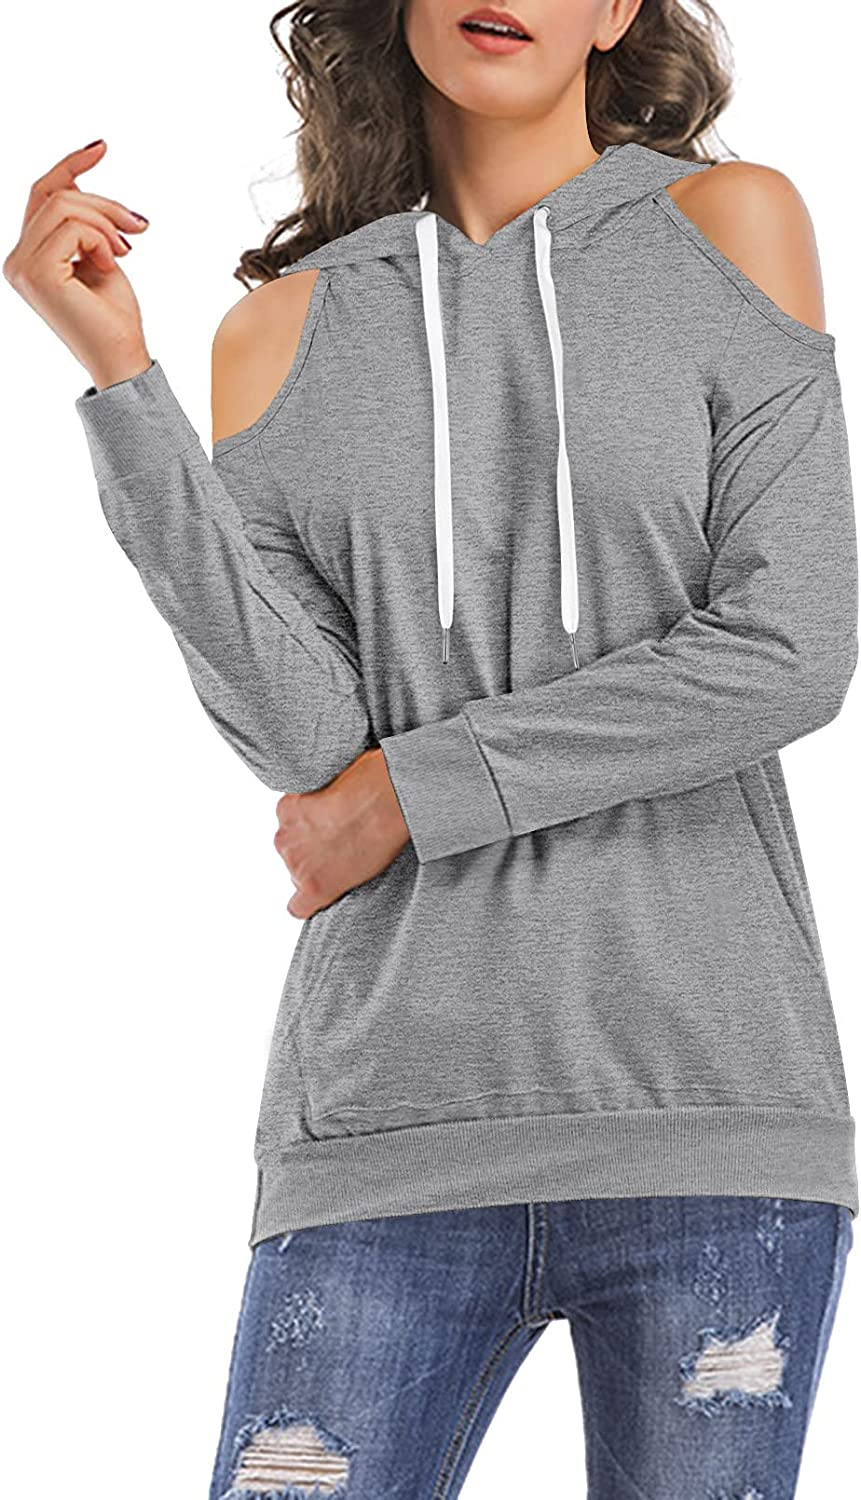 HAPCOPE Women's Cold Shoulder Hoodies Long Sleeve Pullover Hooded Sweatshirt Cut Out Shirt Tunic Tops